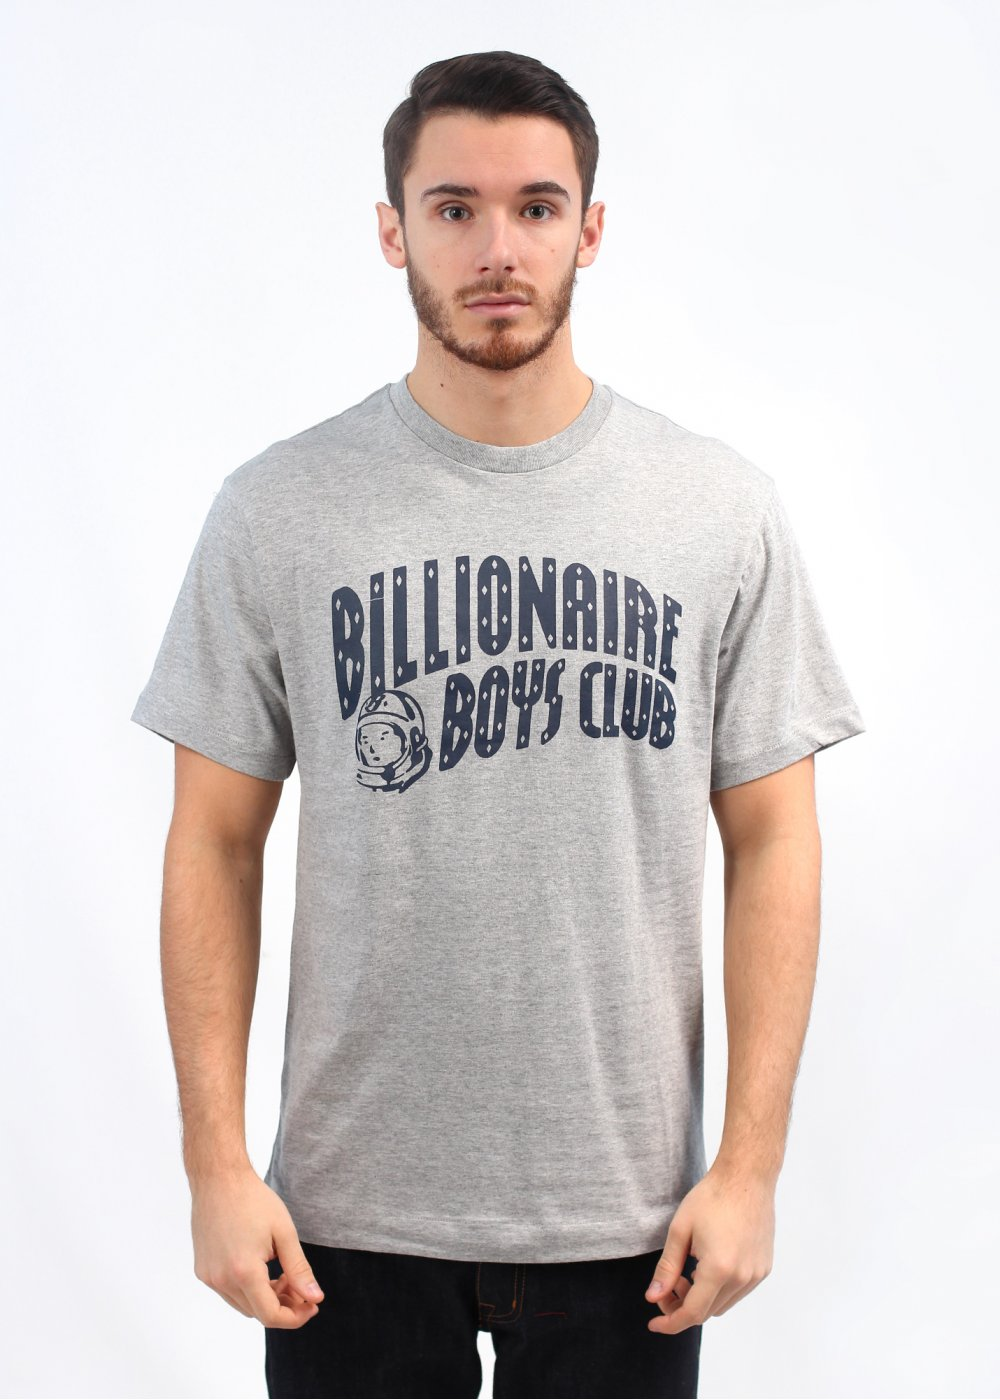 Billionaire boys club classic arch t shirt grey peacoat for T shirts for clubs